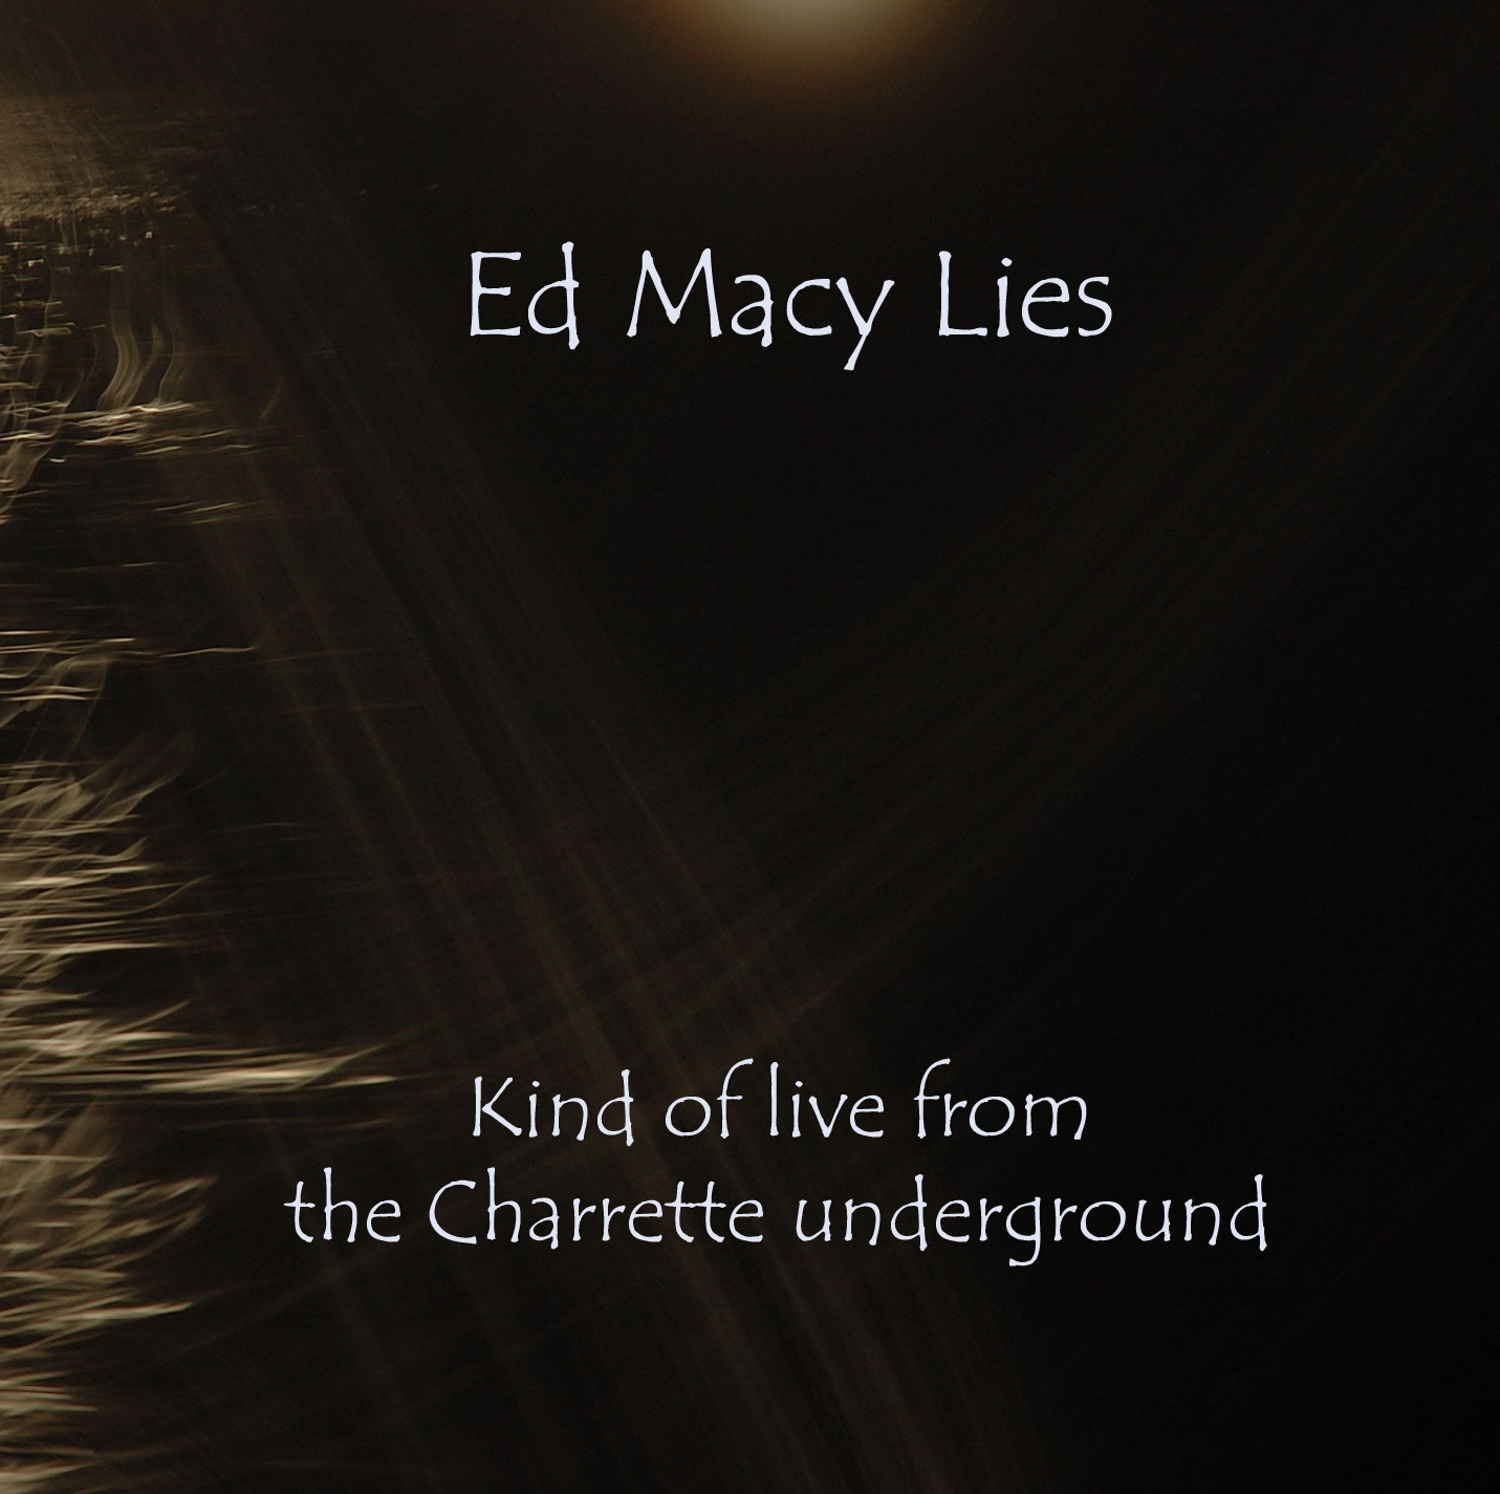 Ed Macy Lies: Kind of live from the Charrette underground (2004)